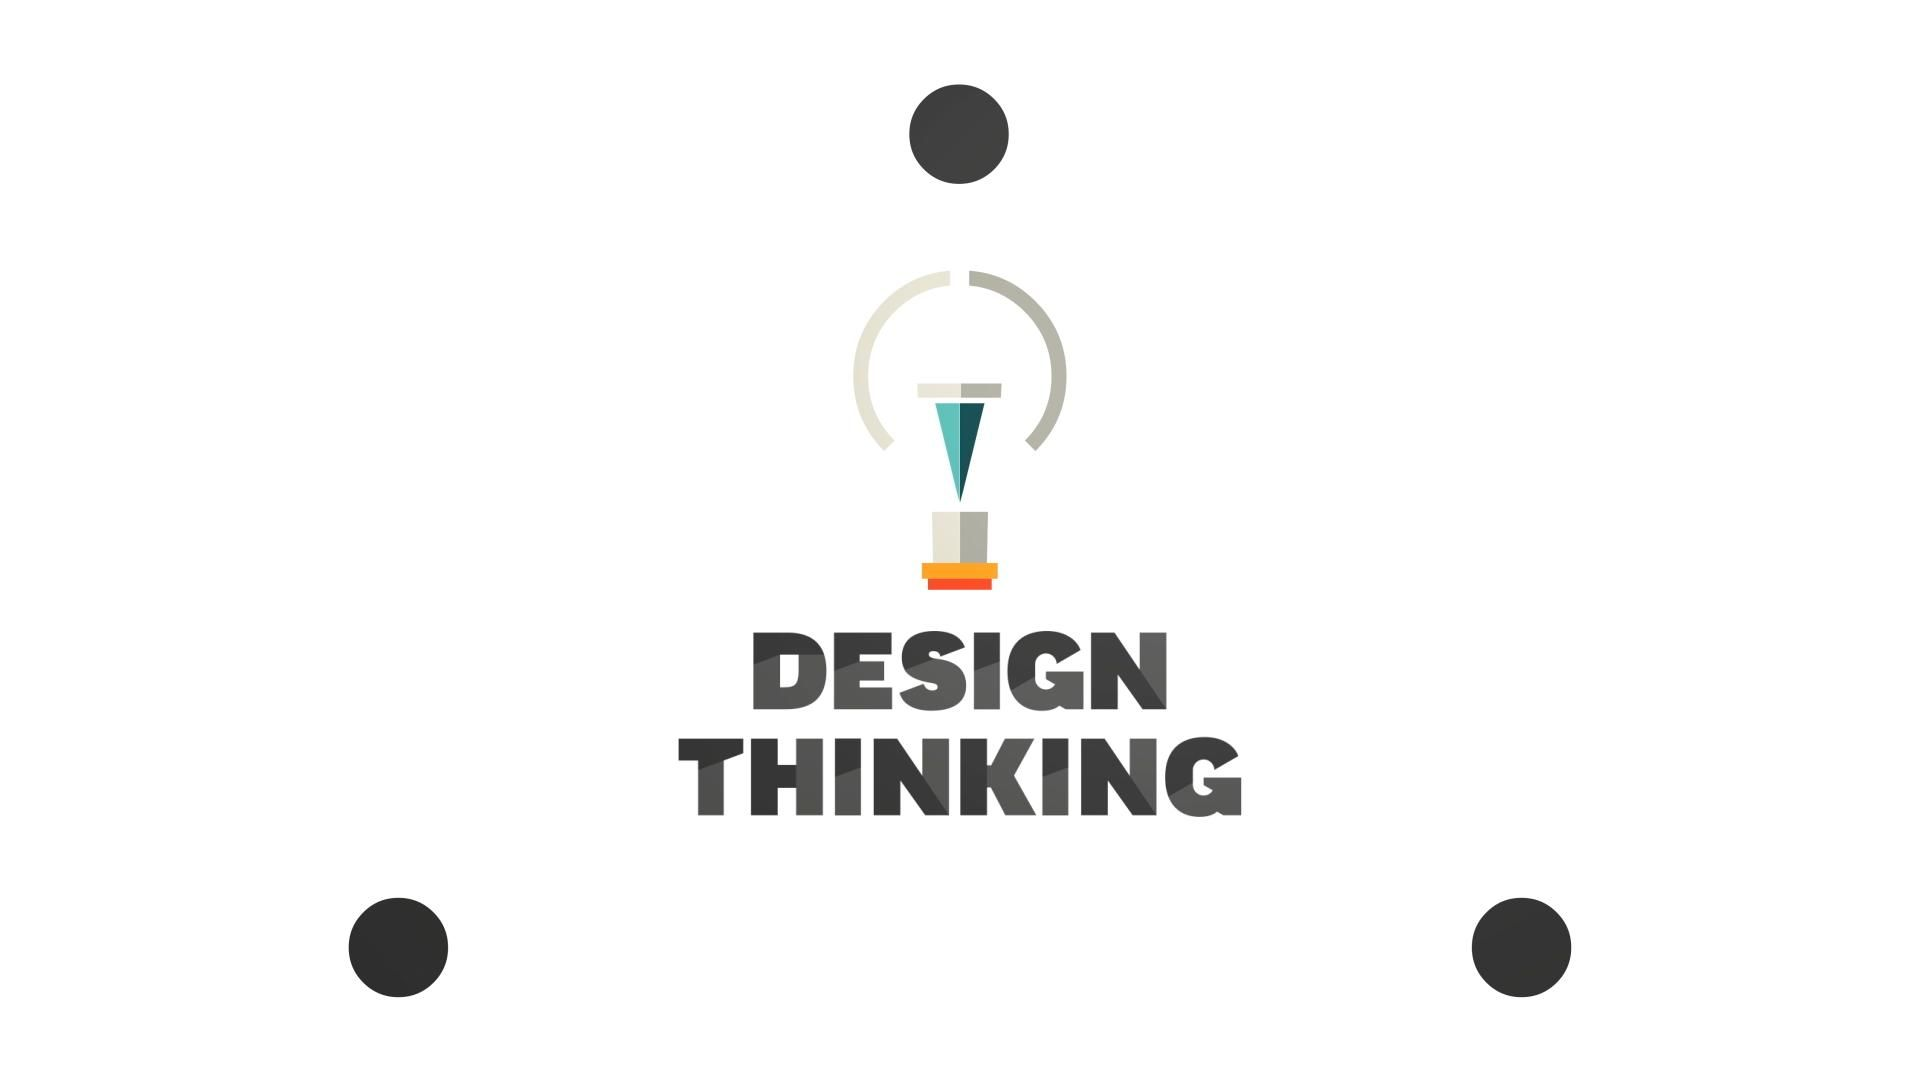 10 Best Online Design Thinking Courses with certification